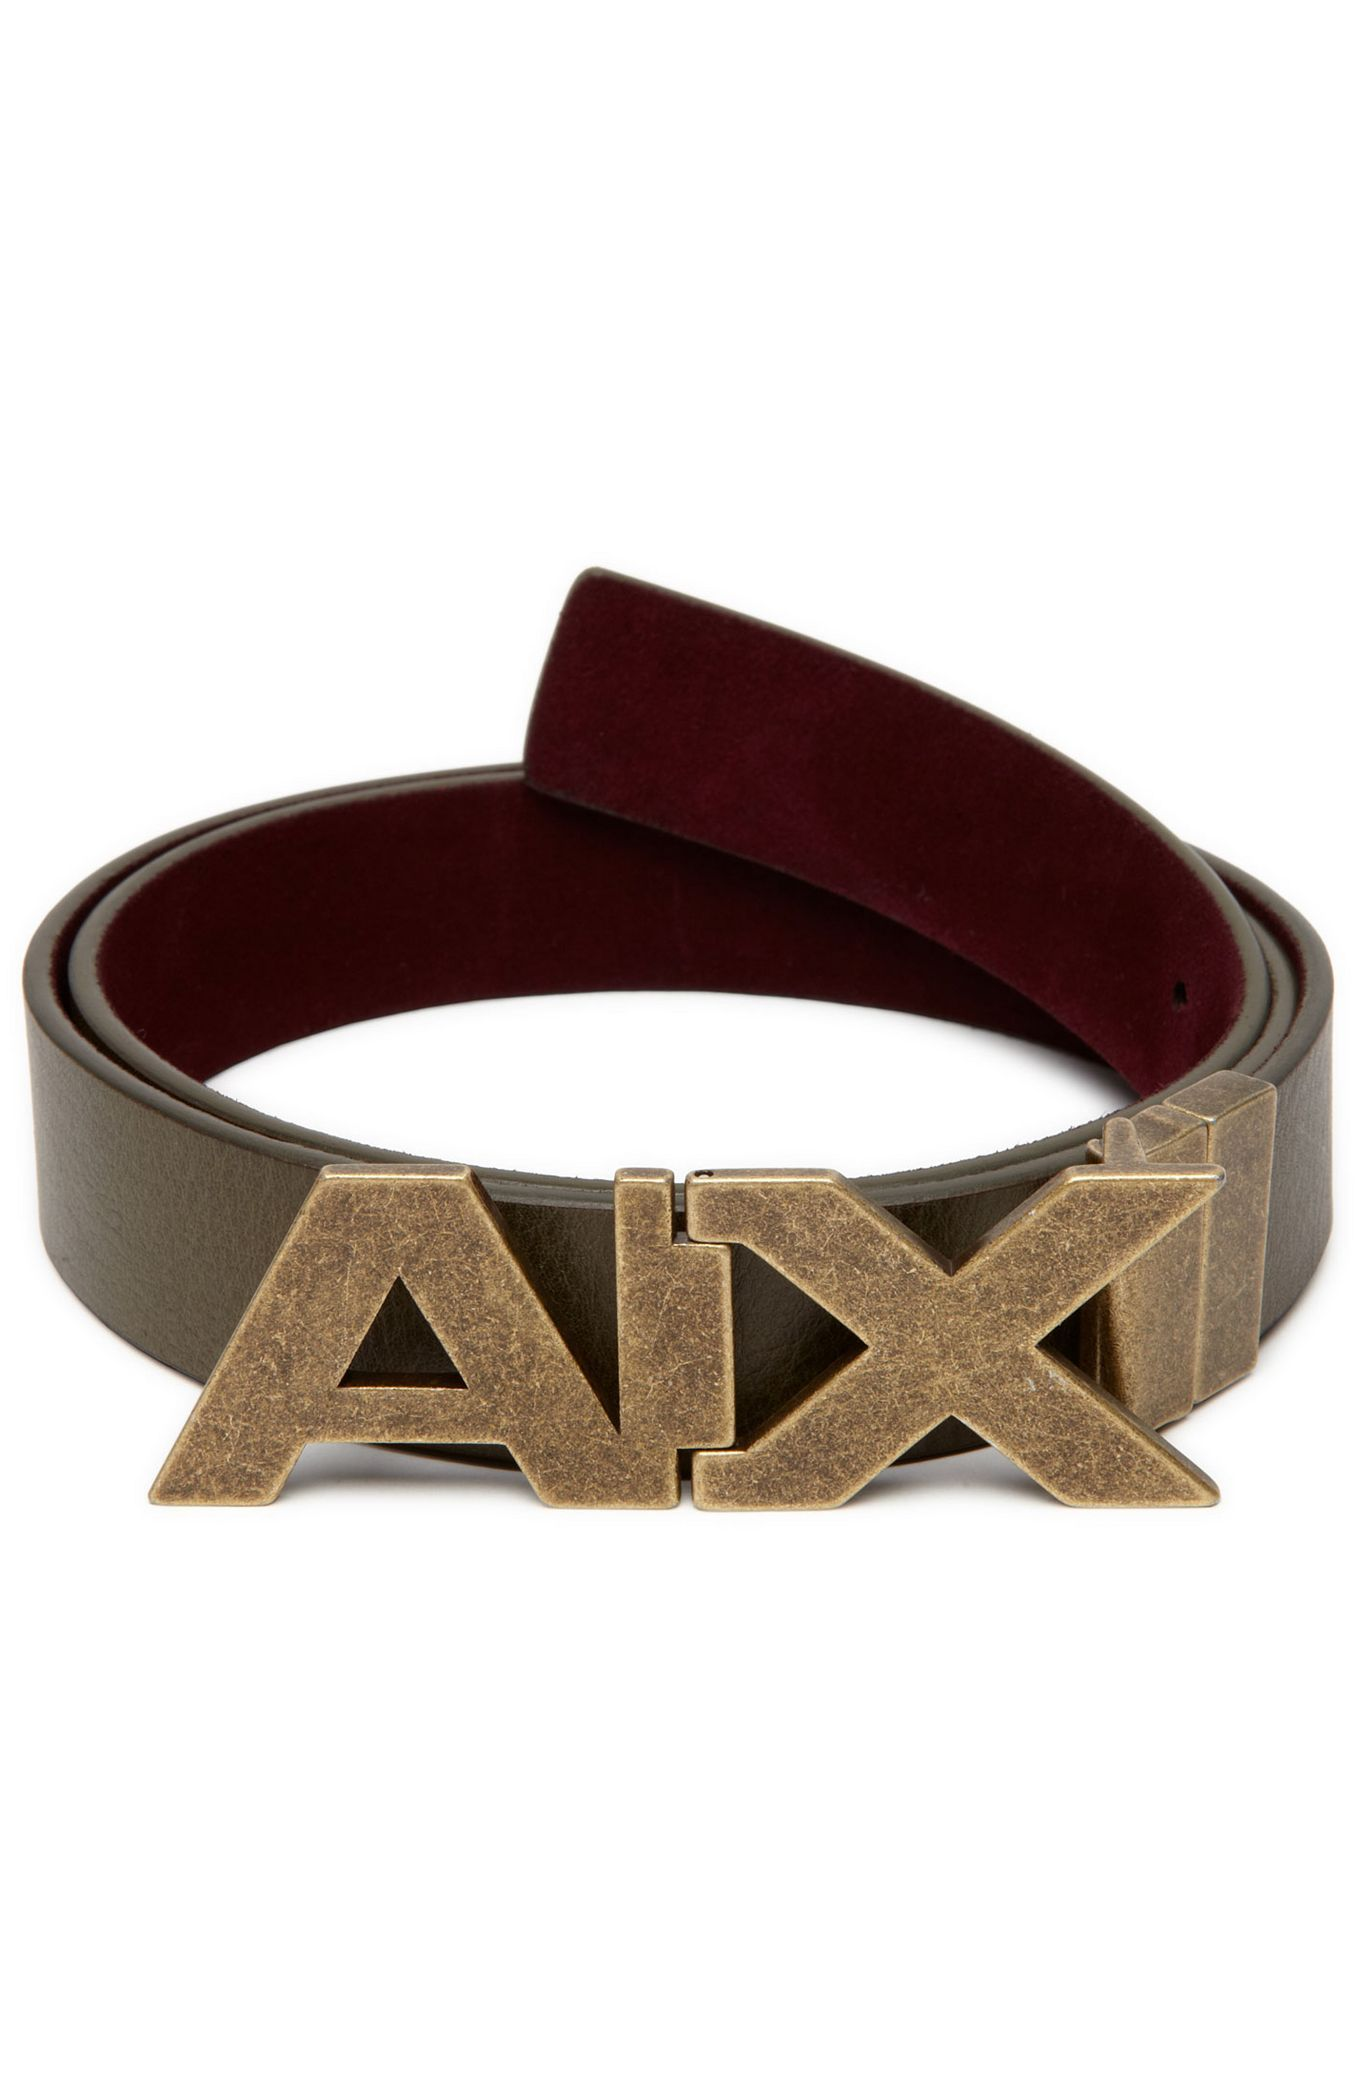 a173ad94 Bold Reversible Belt - Accessories - Mens - Armani Exchange ...